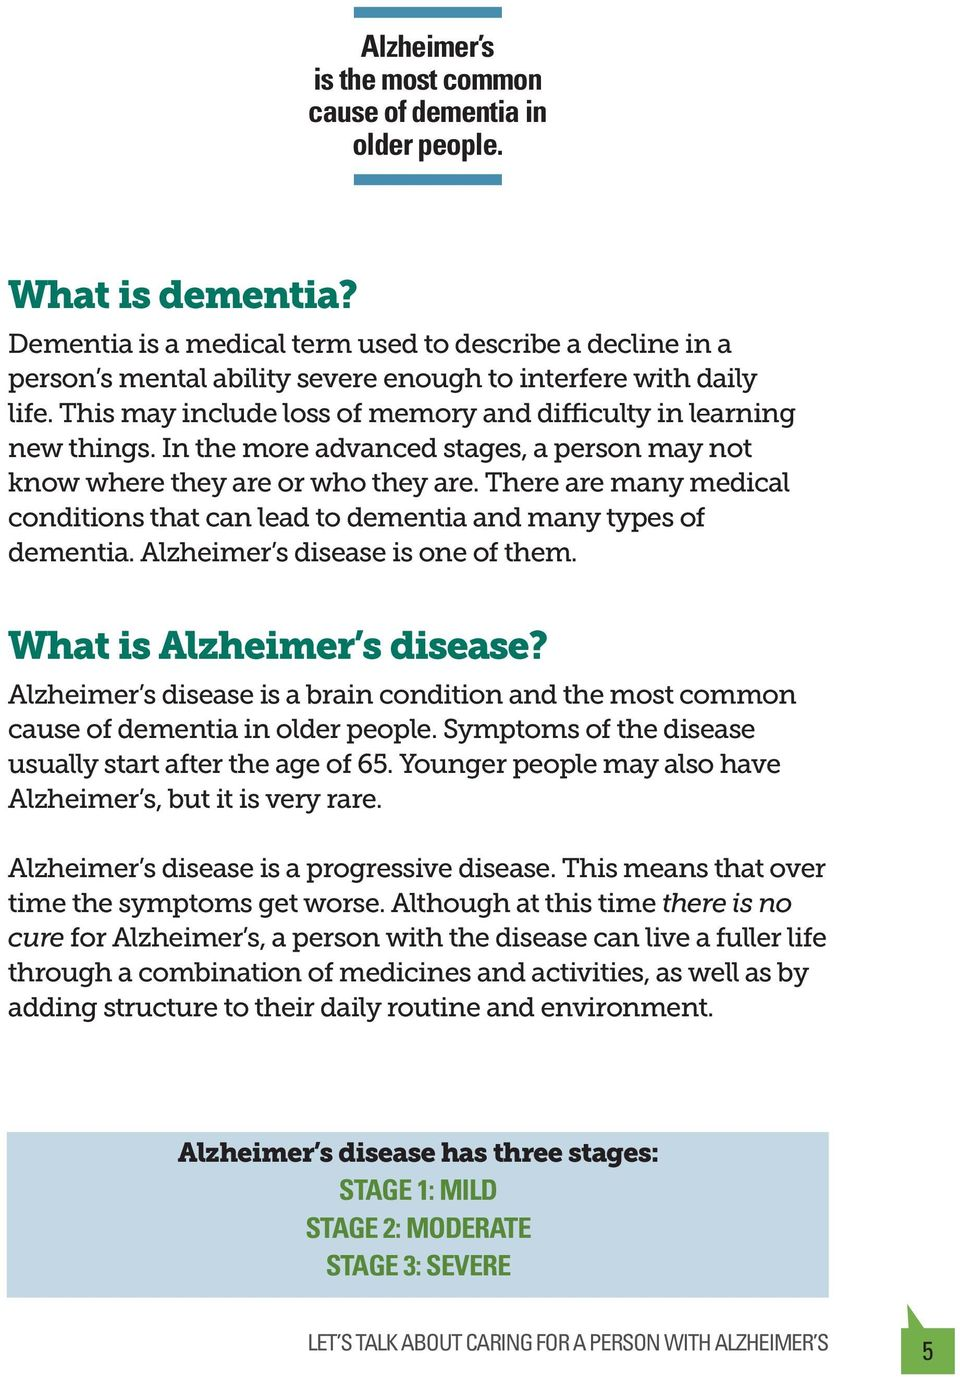 In the more advanced stages, a person may not know where they are or who they are. There are many medical conditions that can lead to dementia and many types of dementia.